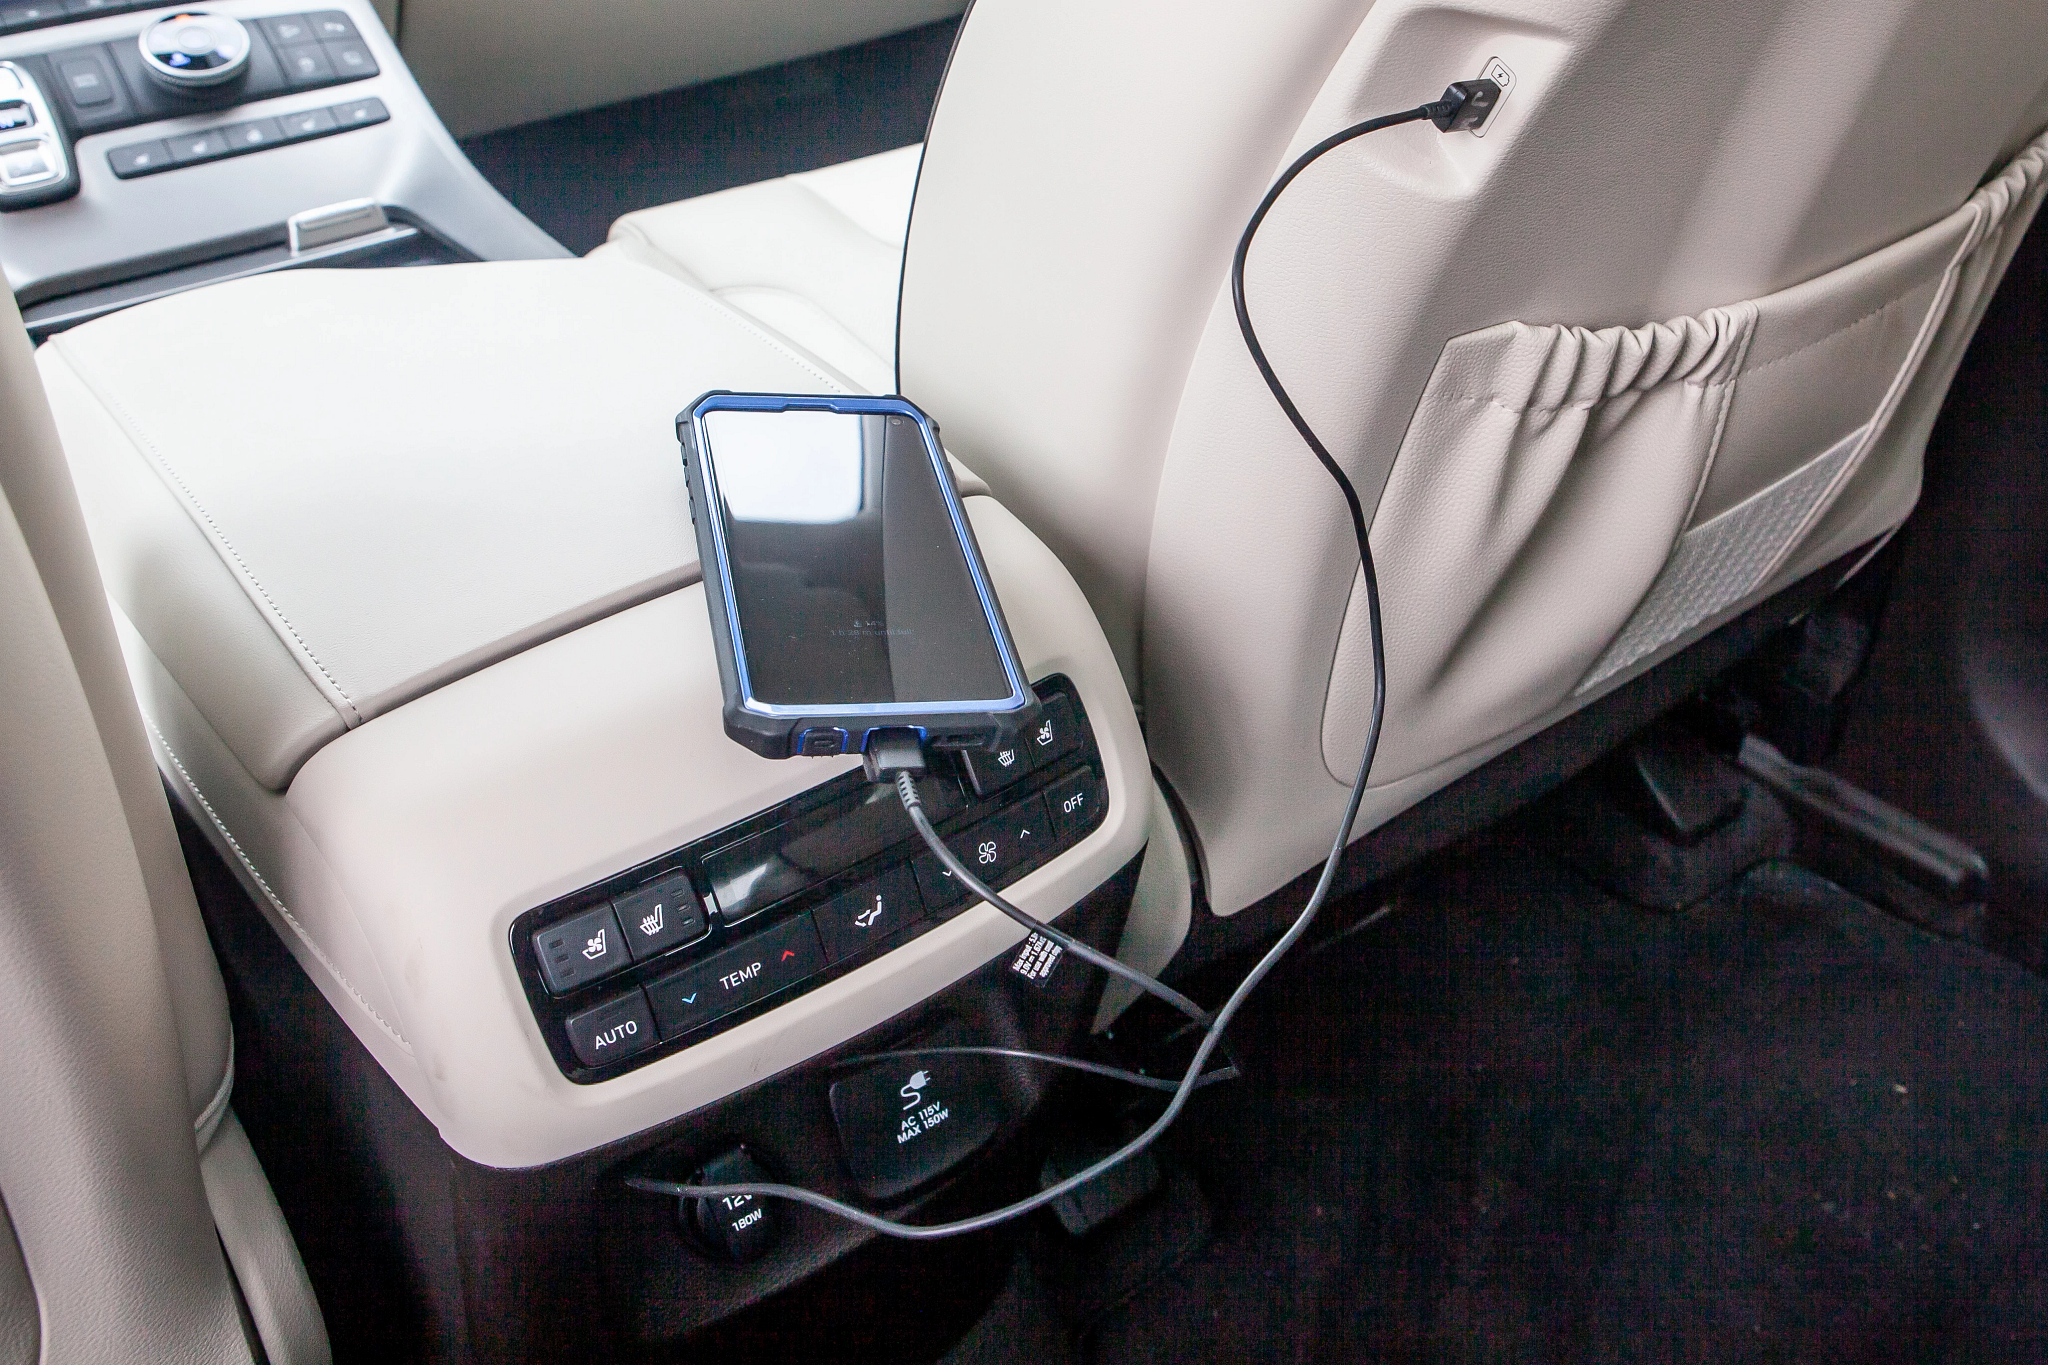 2020 Hyundai Palisade: Testing the USB Ports — and Charging Pad